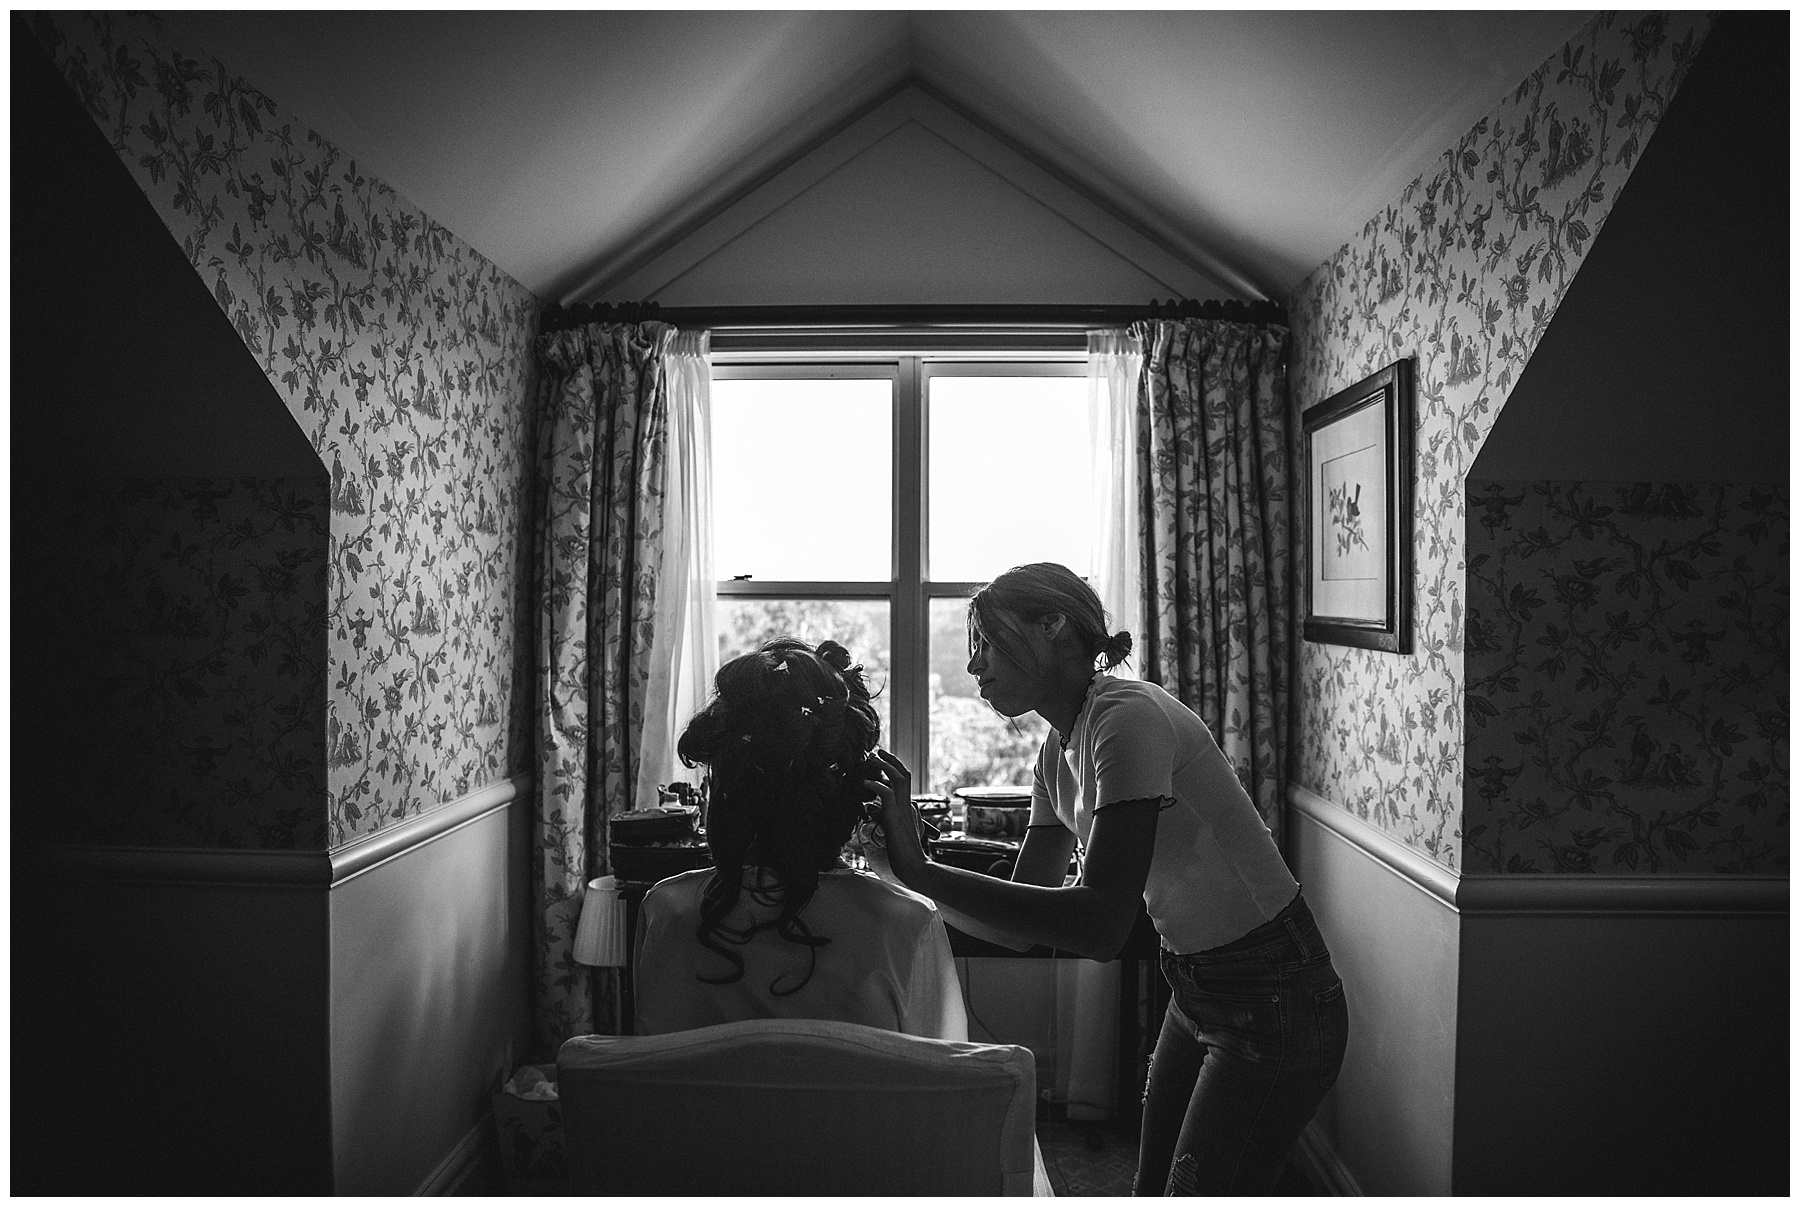 Hair and Make Up Artist applying the finishes touches to the bride - de lumière photography